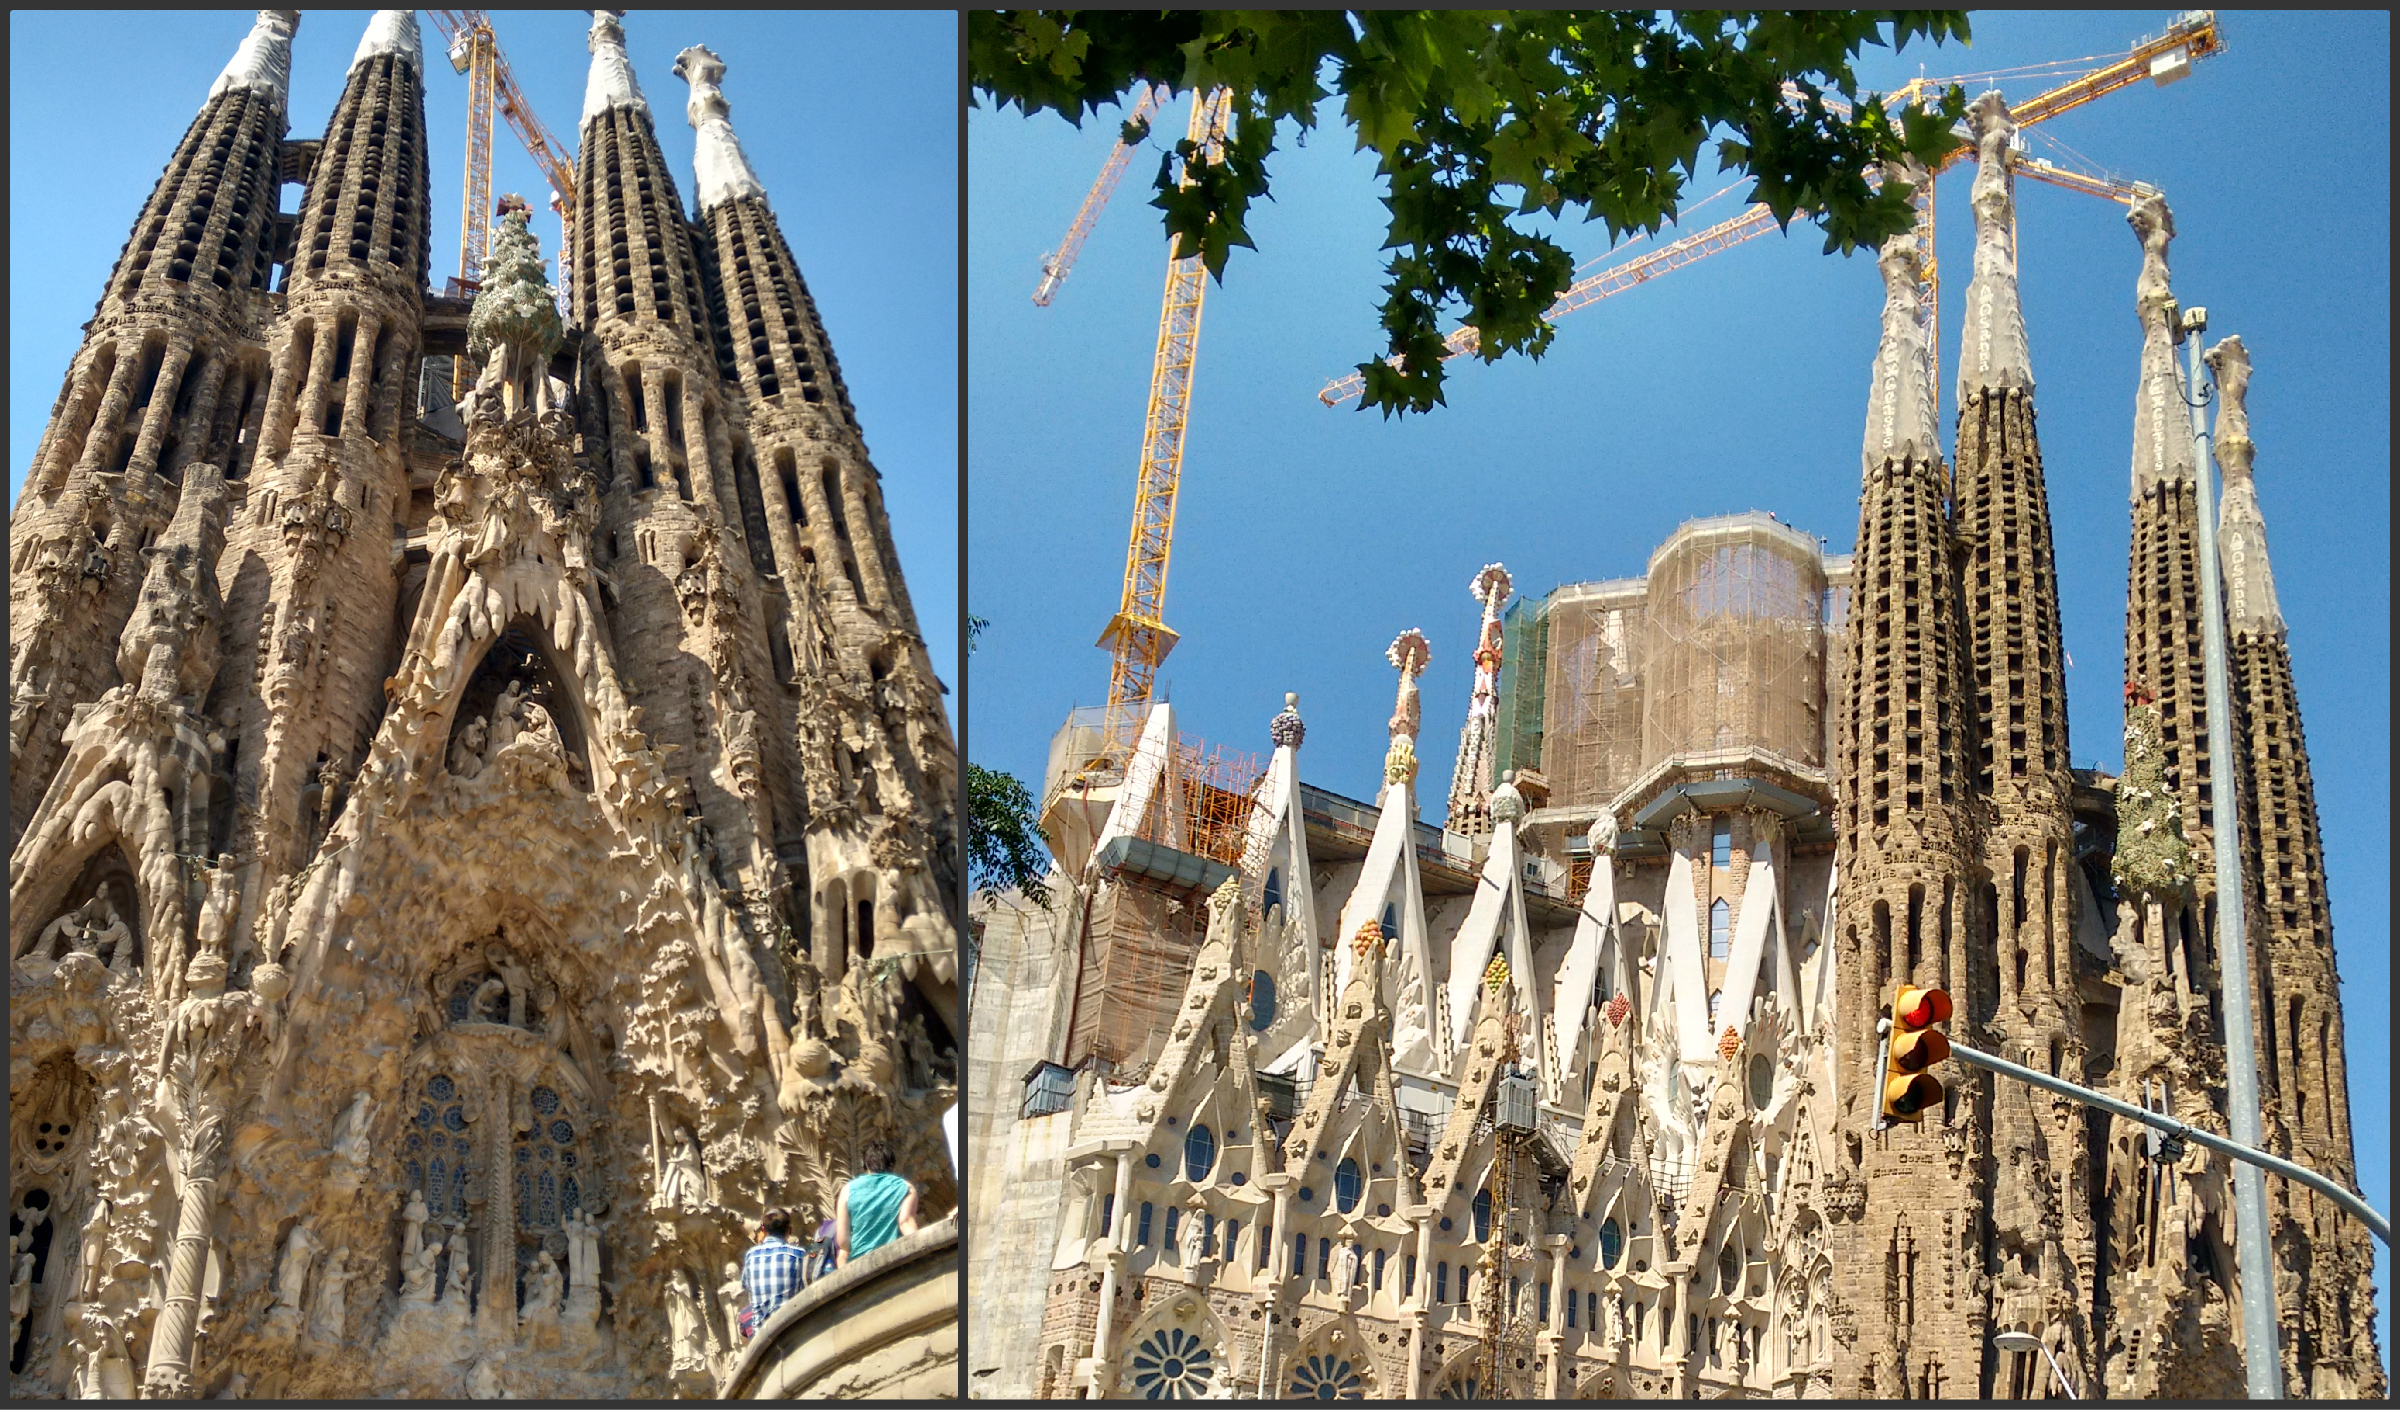 Gaudi's unfinished masterpiece Sagrada Familia